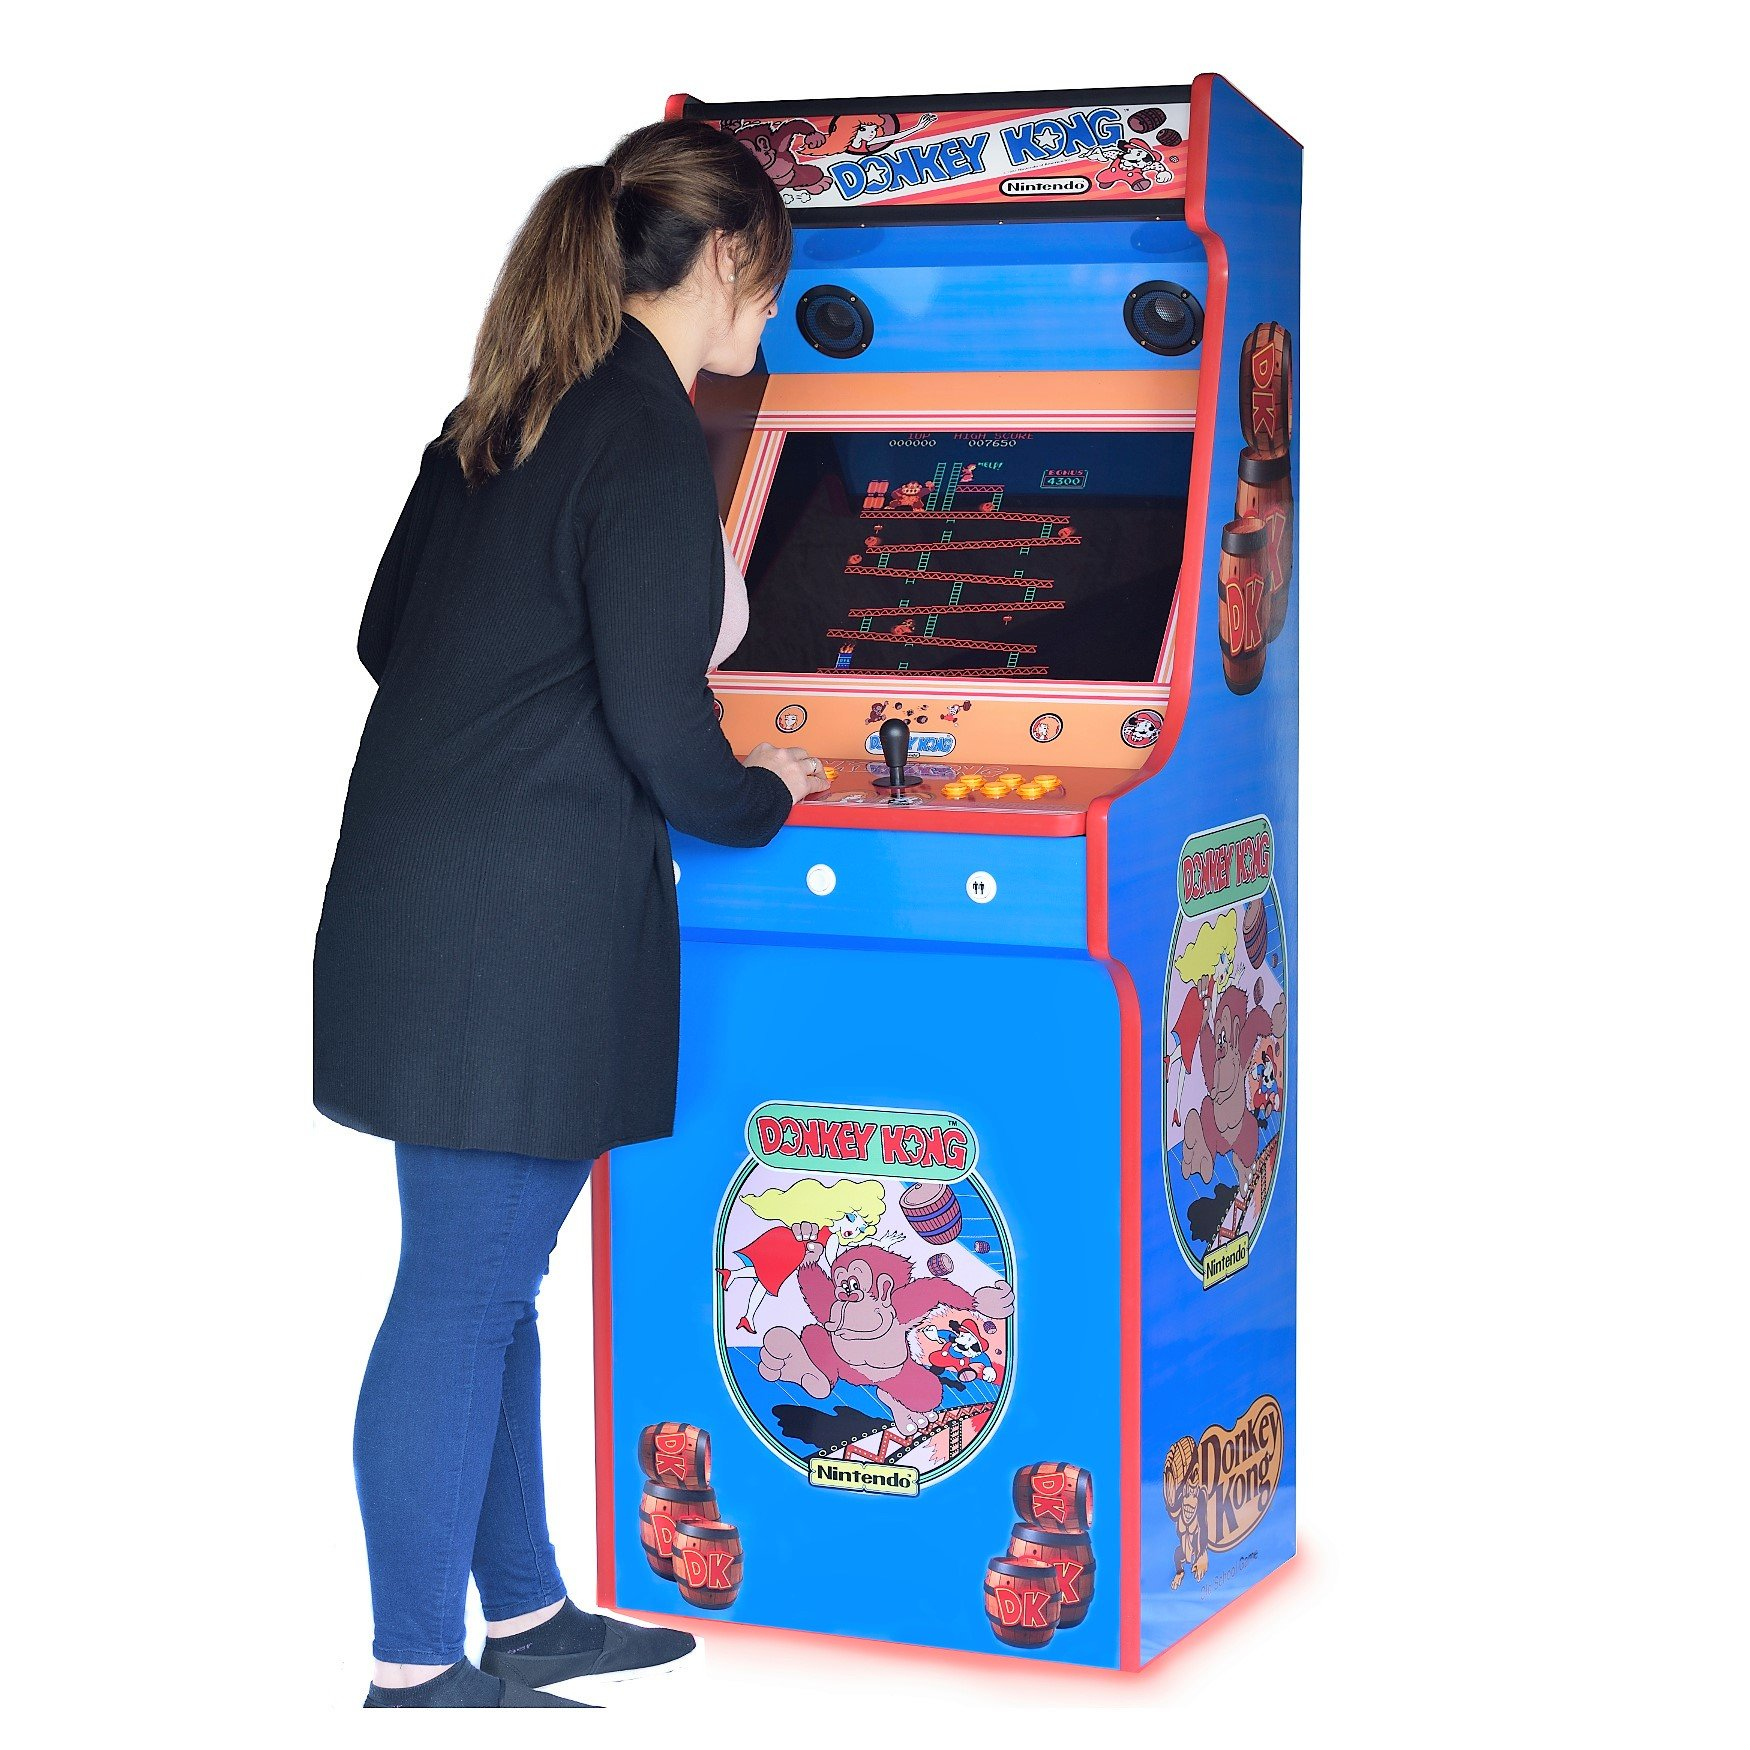 Classic Upright Arcade Machine - Donkey Kong - Playing